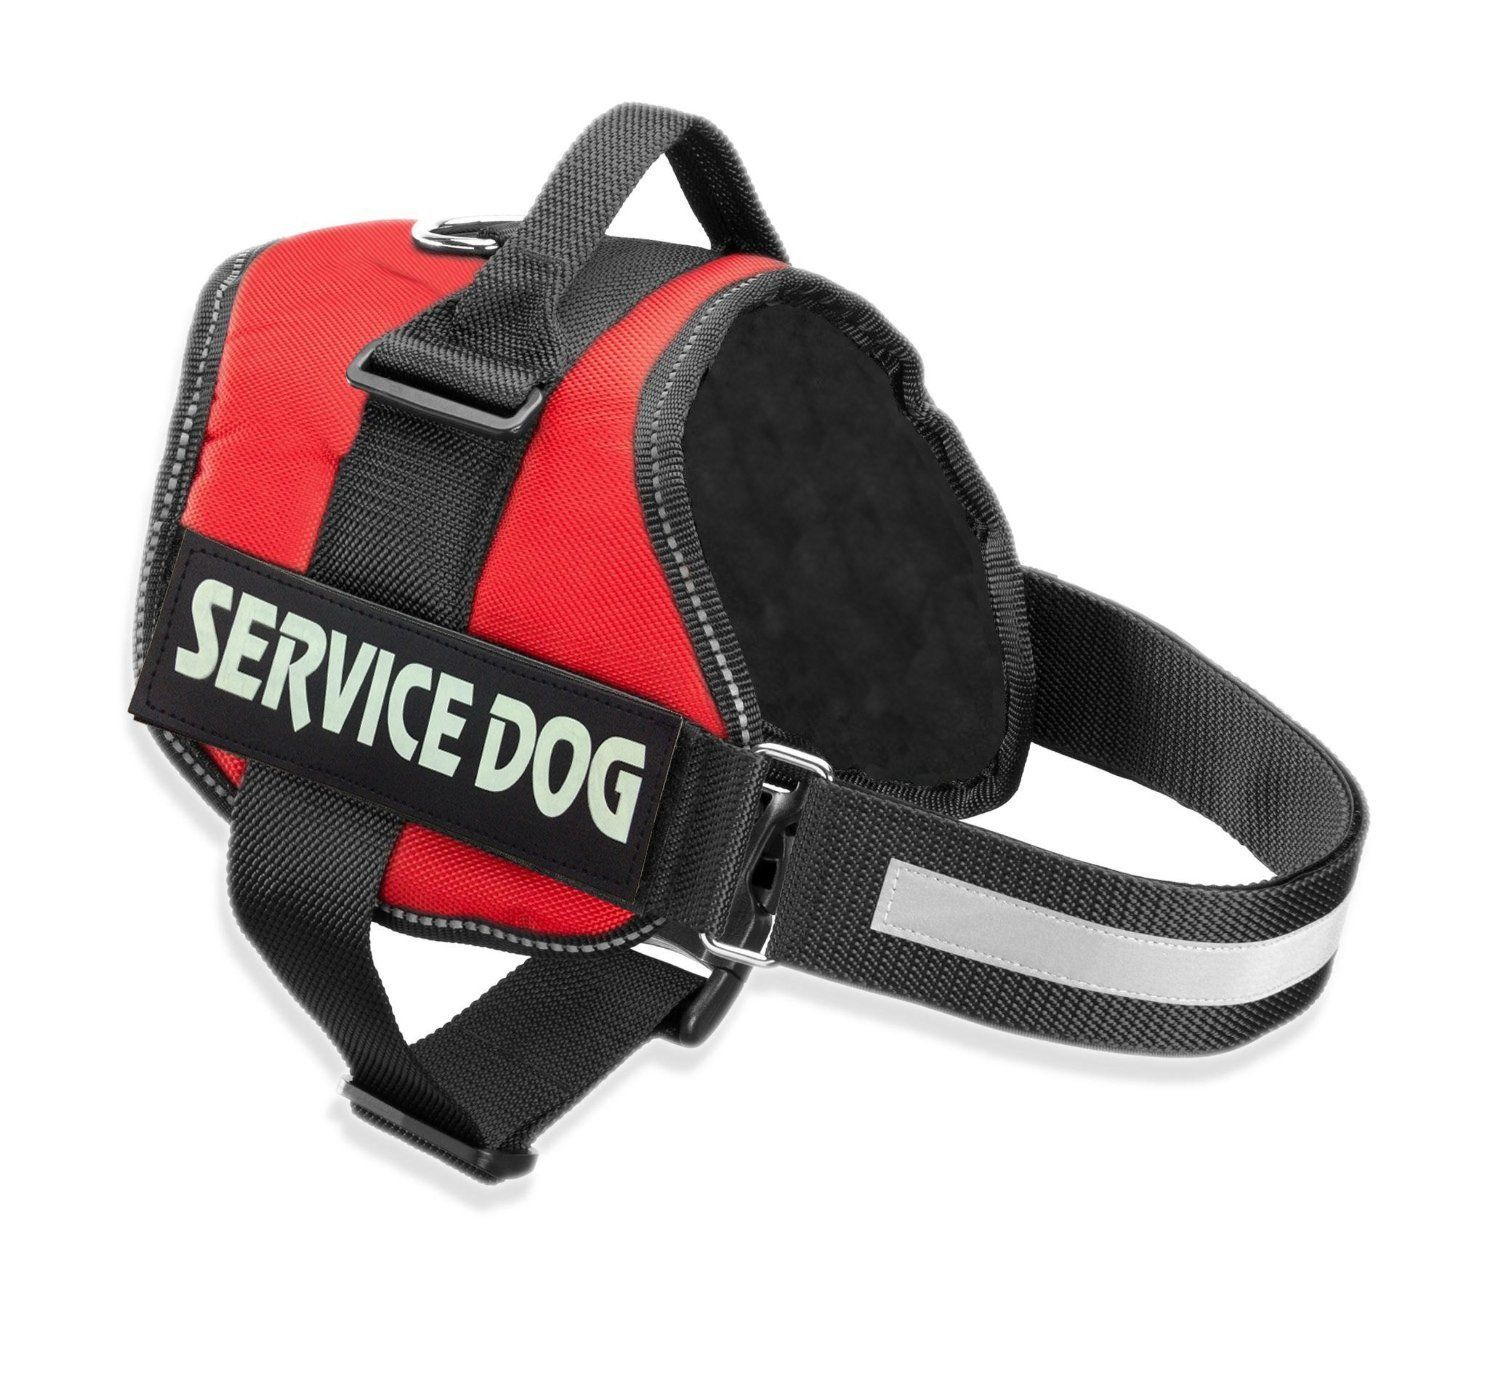 Cl Domino Service Dog Harness Security Dog Harness With Two